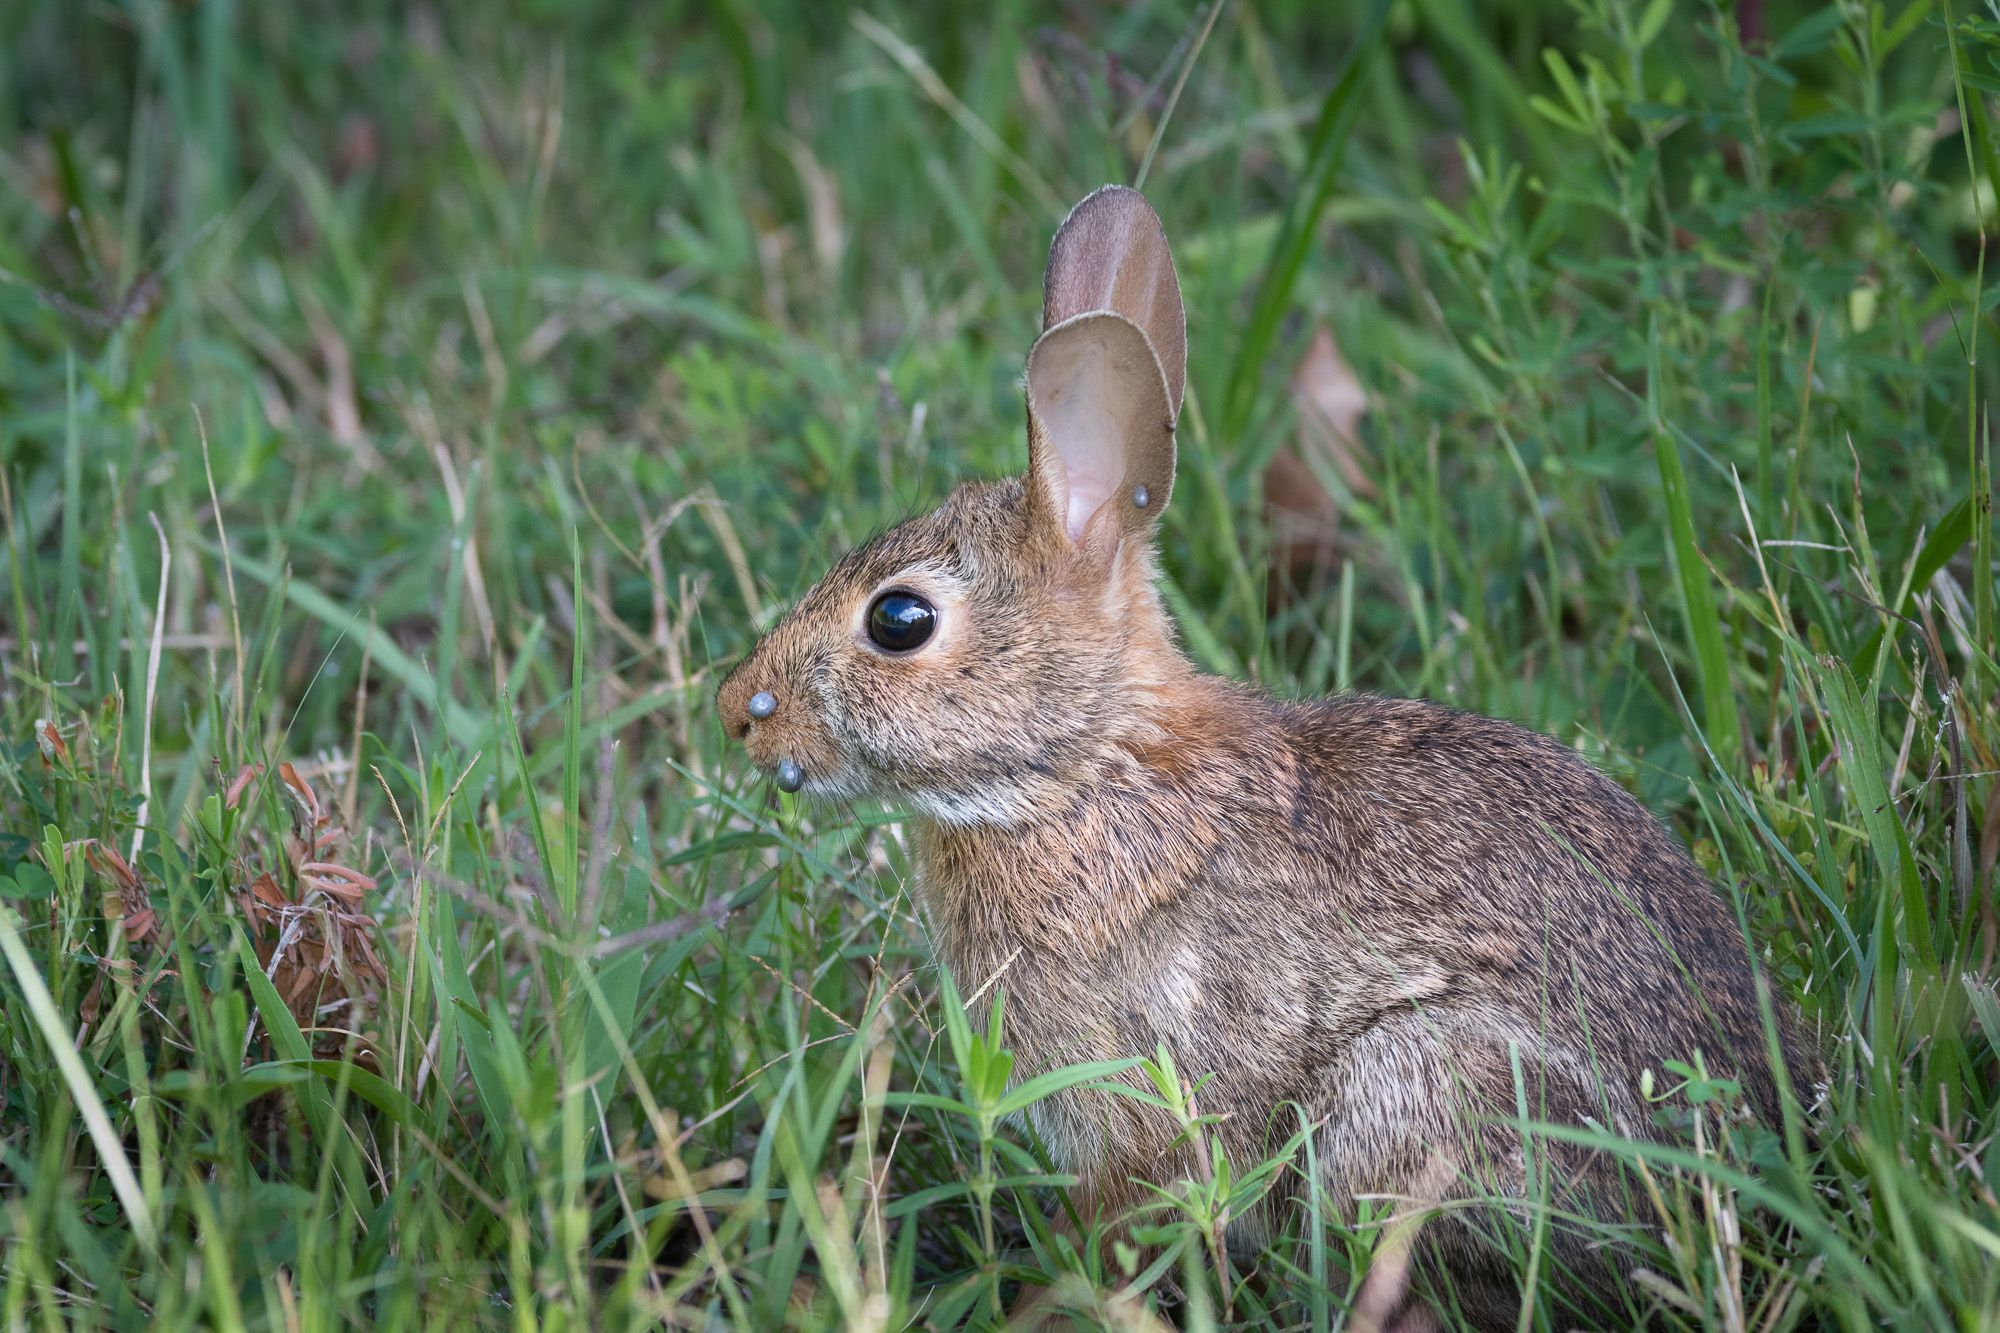 Eastern Cottontail Rabbit with at least 4 ticks. Look at its snout and ear. Click on the images in this post for a larger view.